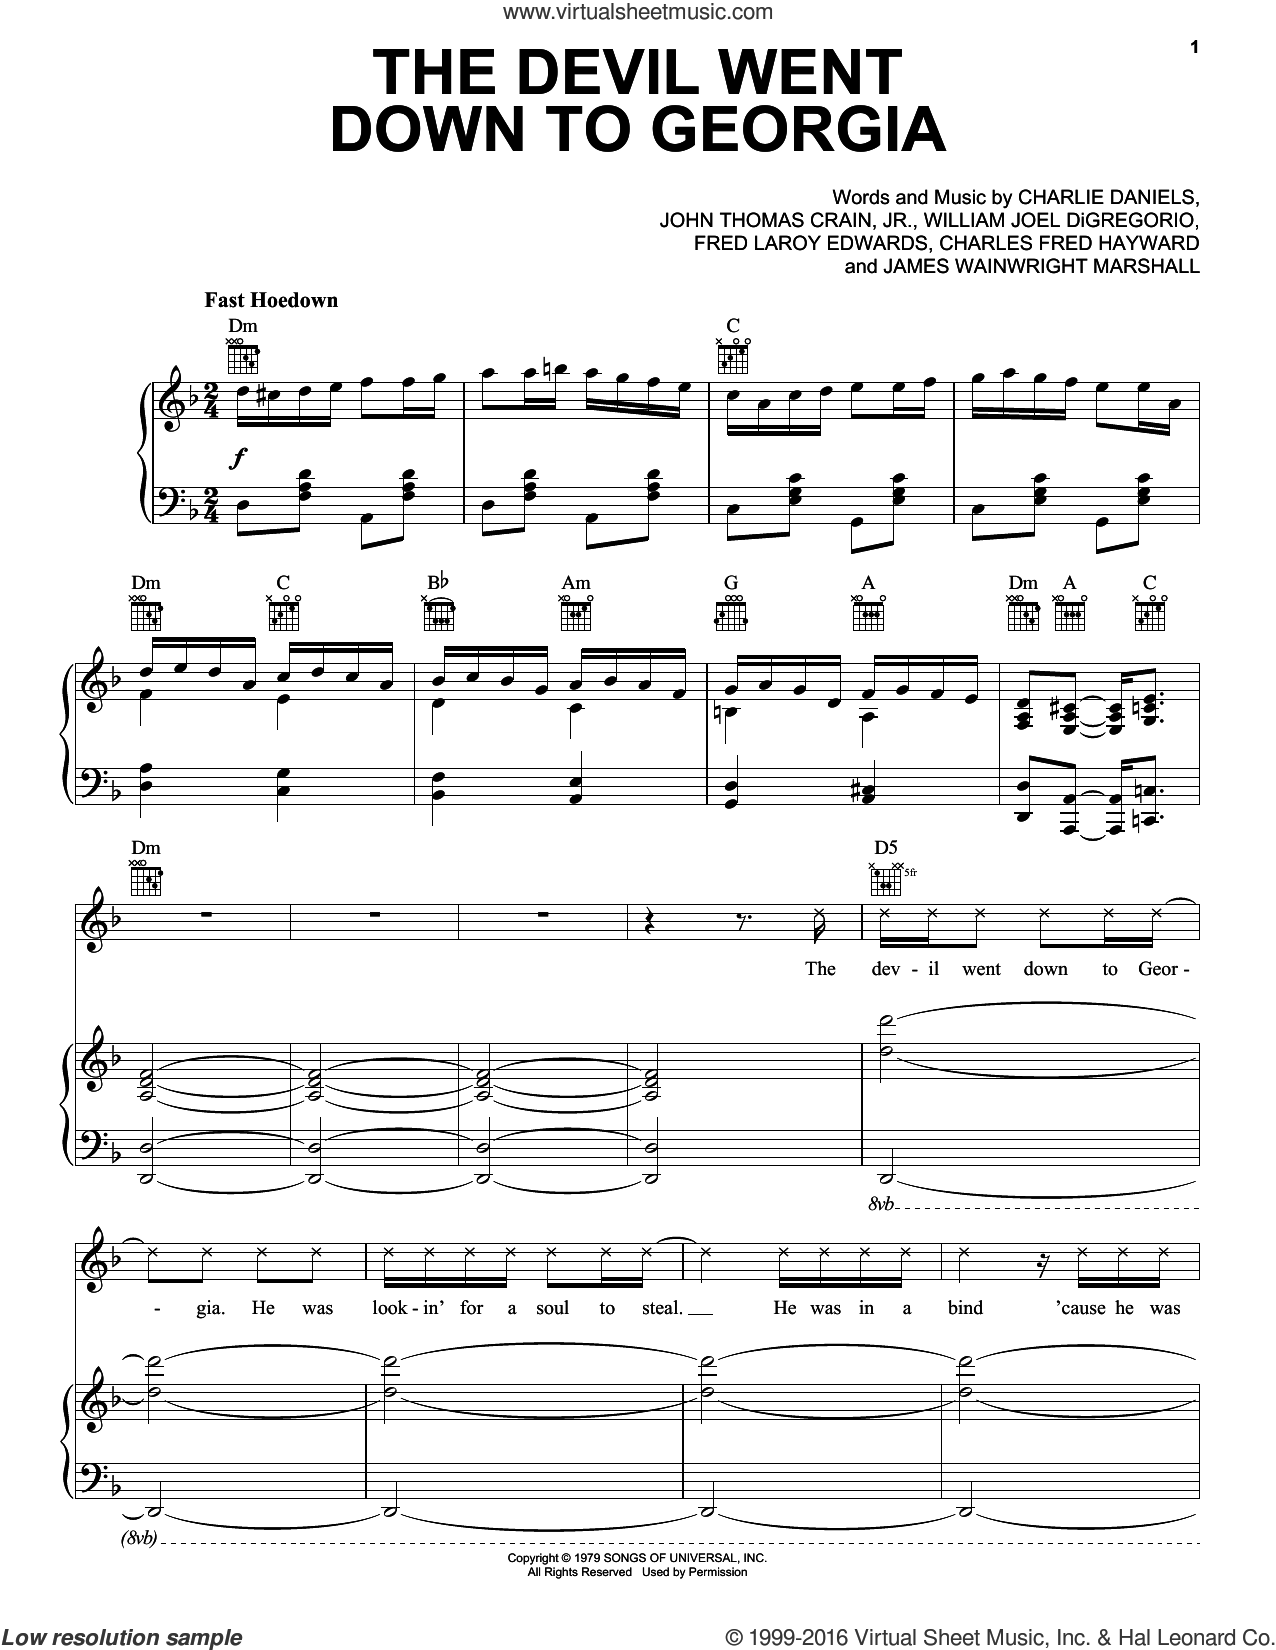 The Devil Went Down To Georgia sheet music for voice, piano or guitar by William Joel DiGregorio